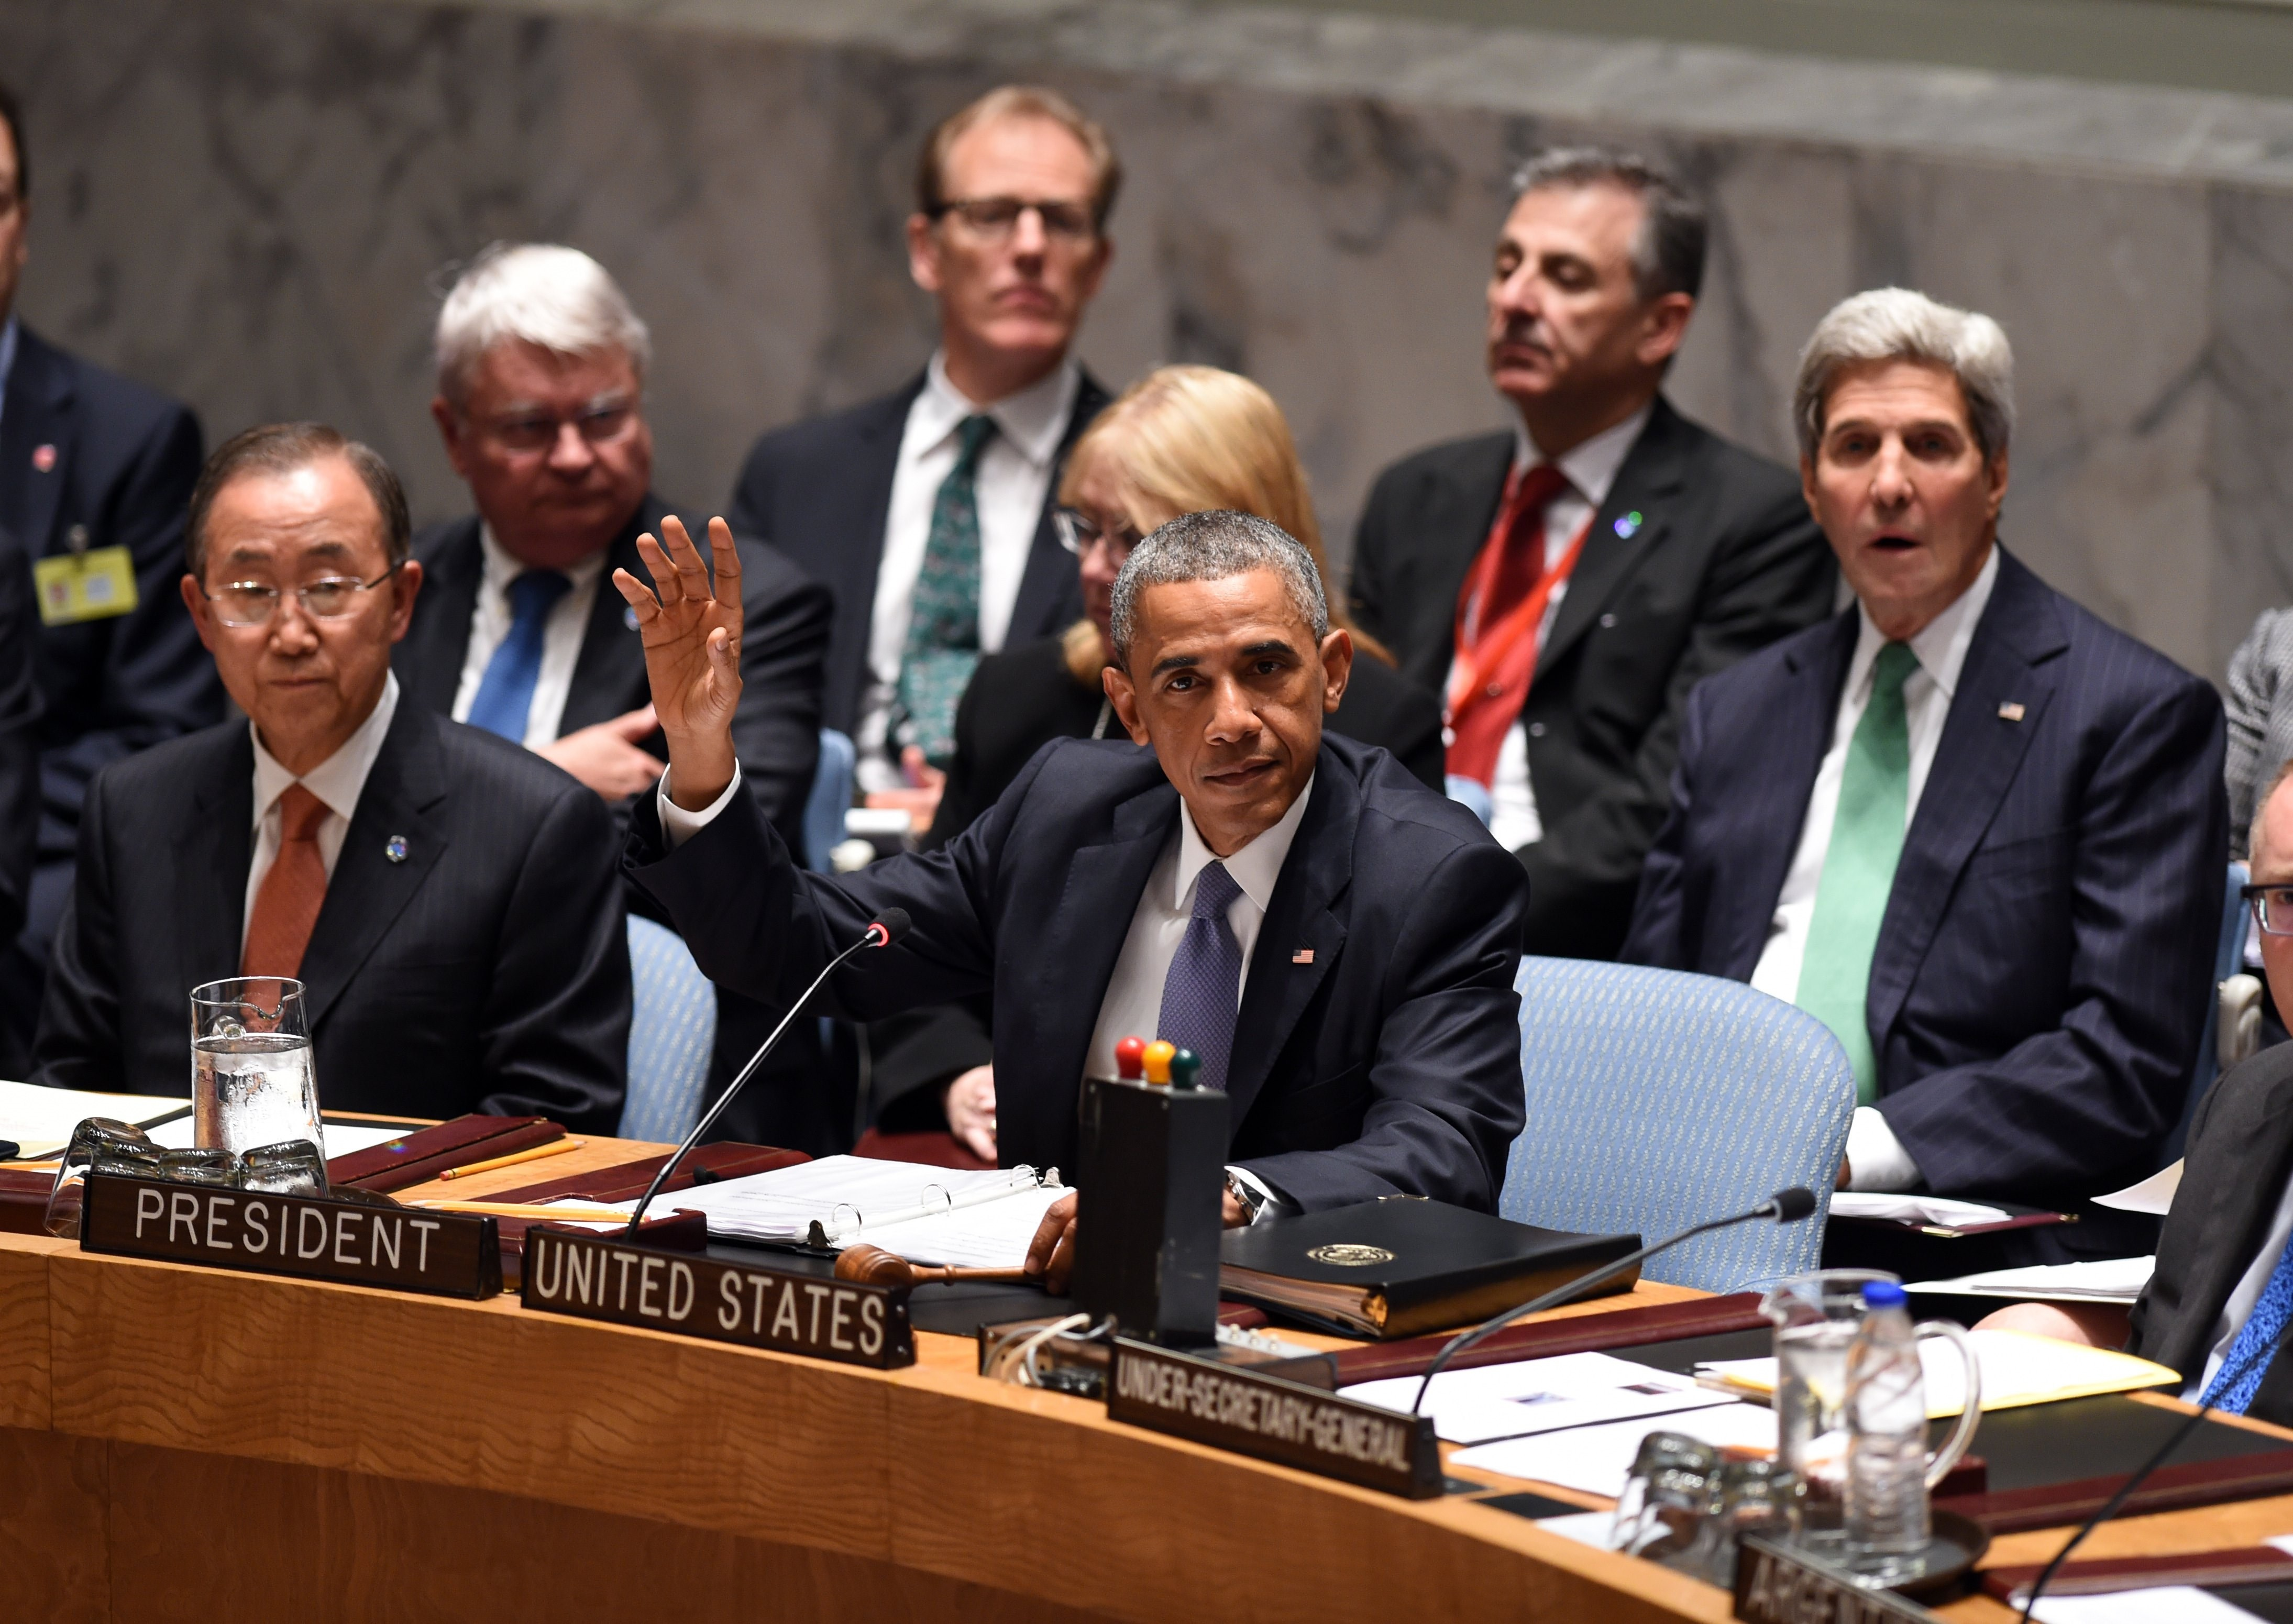 U.S. President Barack Obama chairs a special meeting of the U.N. Security Council during the 69th session of the U.N. General Assembly on Sept. 24, 2014, in New York City